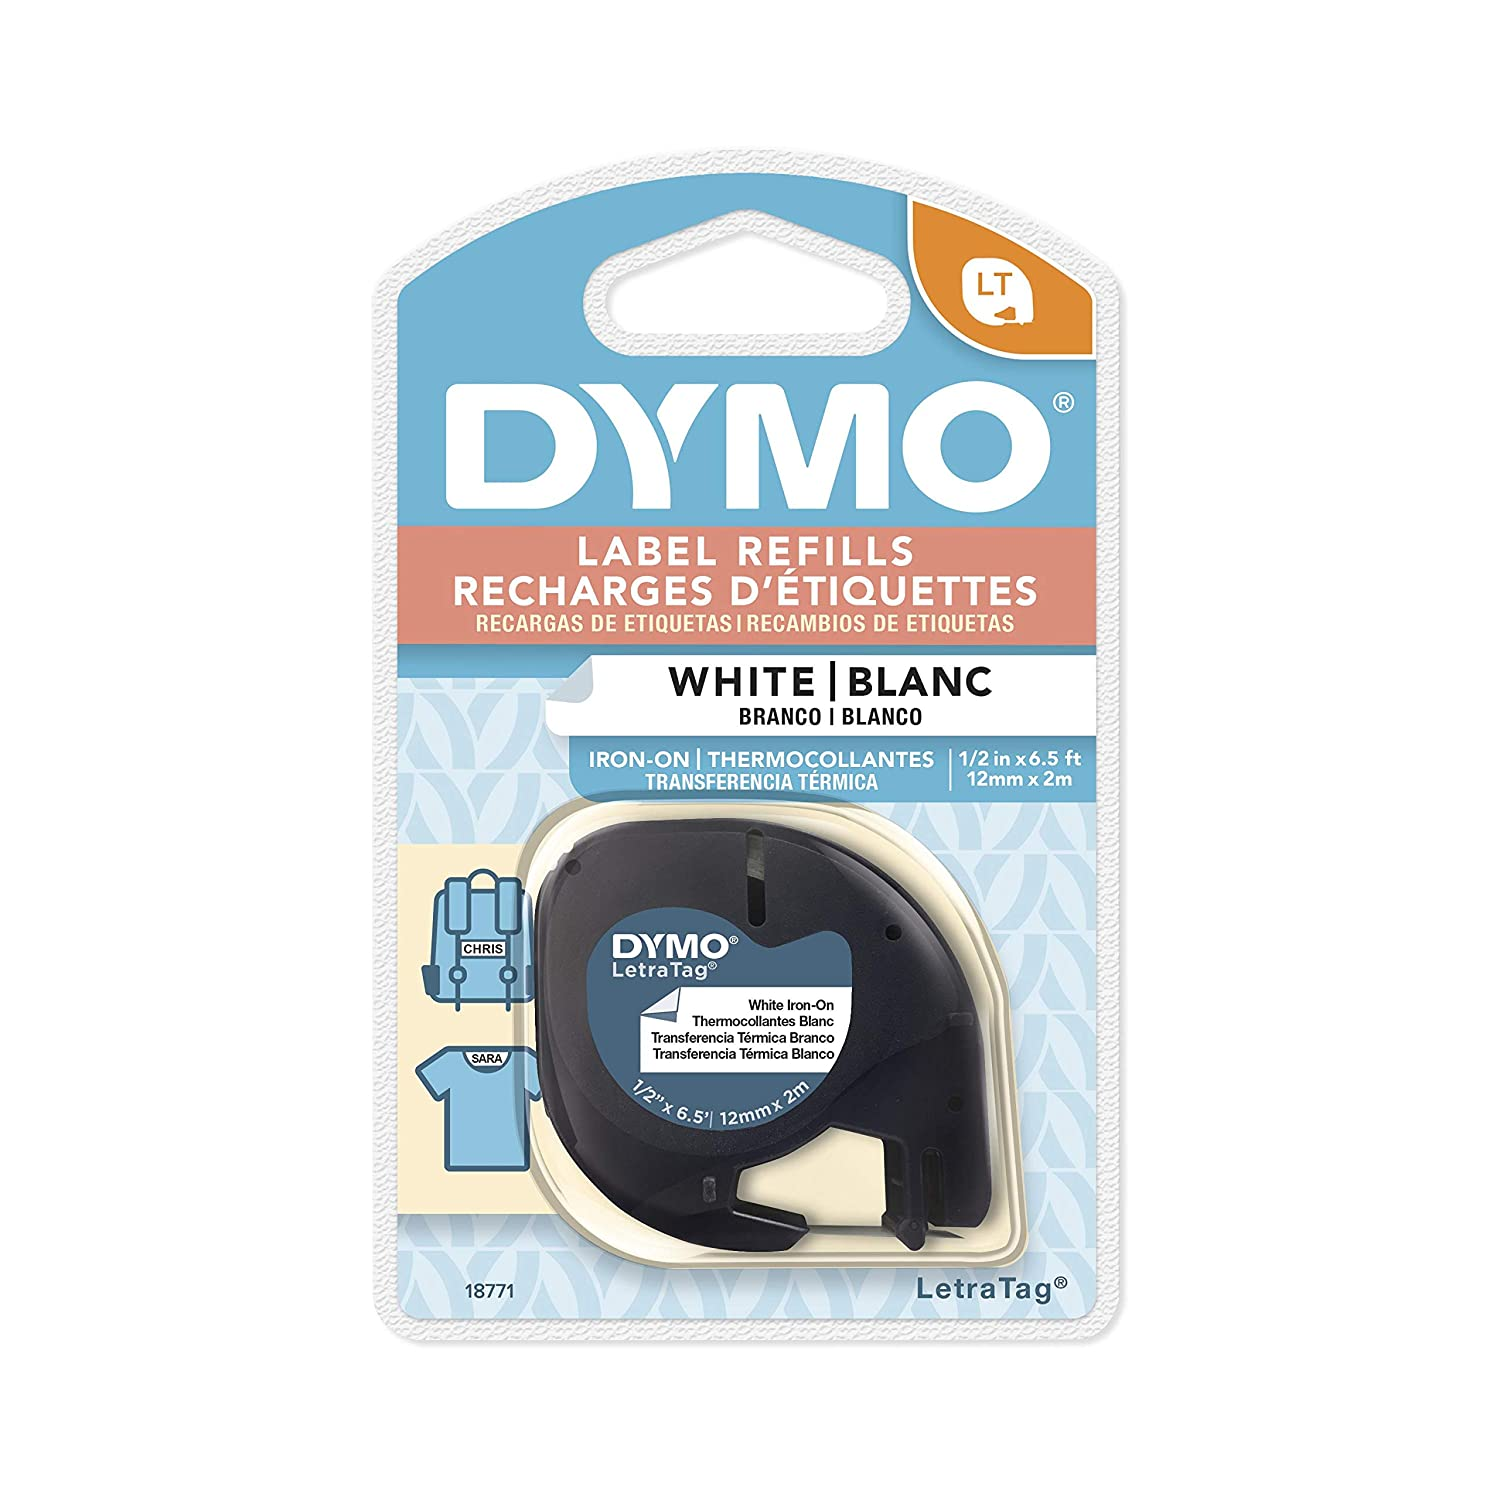 DYMO 18771 LT Tape Cartridge for Dymo LetraTag Label Makers, Adhere To Fabrics Using an Iron, 1/2-Inch x 6.5 Feet, Black on White, Pack of 1